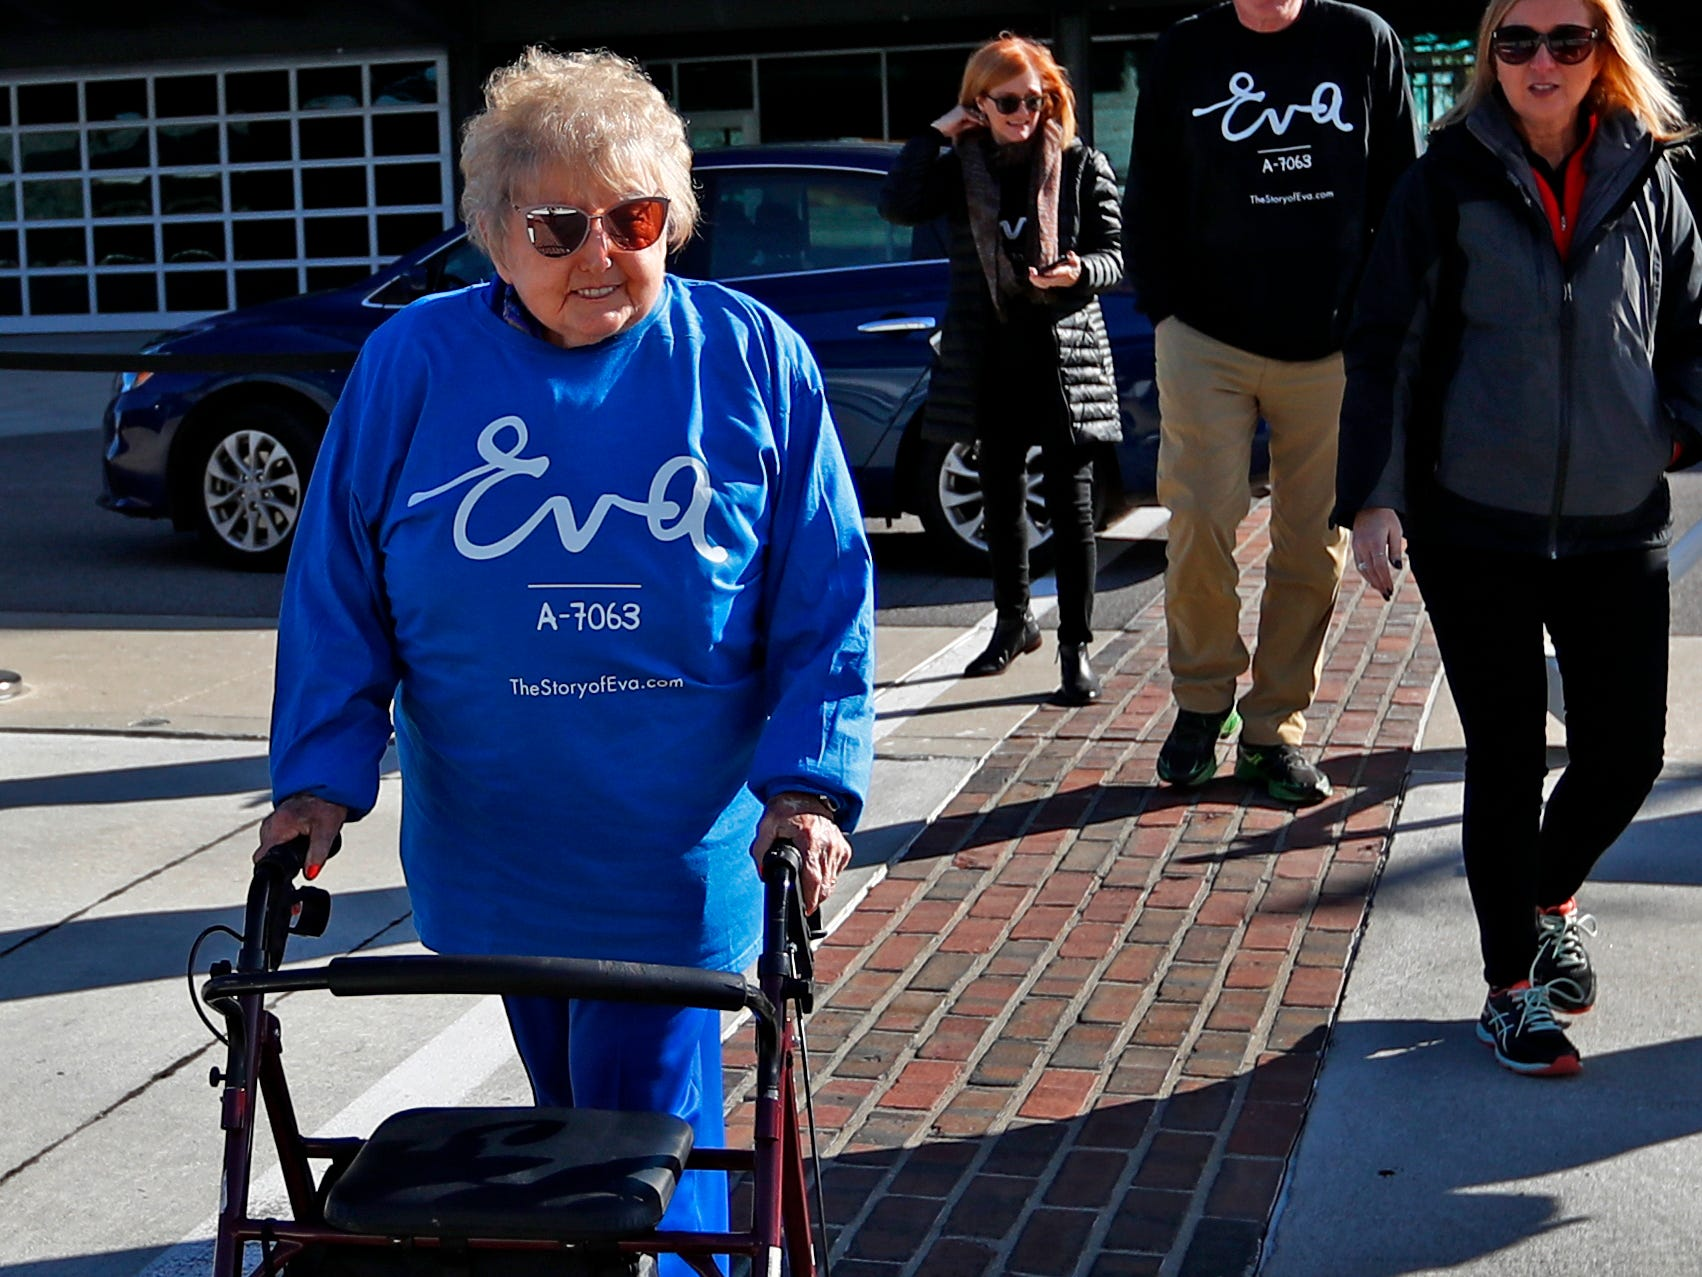 Holocaust survivor Eva Kor walks on the Indianapolis Motor Speedway bricks to get ready to welcome runners and pose for photos, Wednesday, Oct. 24, 2018, during the pace-setting run for the 2019 OneAmerica 500 Festival Mini-Marathon.  The 500 Festival will donate $1 to the CANDLES Holocaust Museum in Terre Haute for every mini-marathon participant who finishes the 2019 race in a better time than Team Eva.  Kor ran the very last of the relay race.